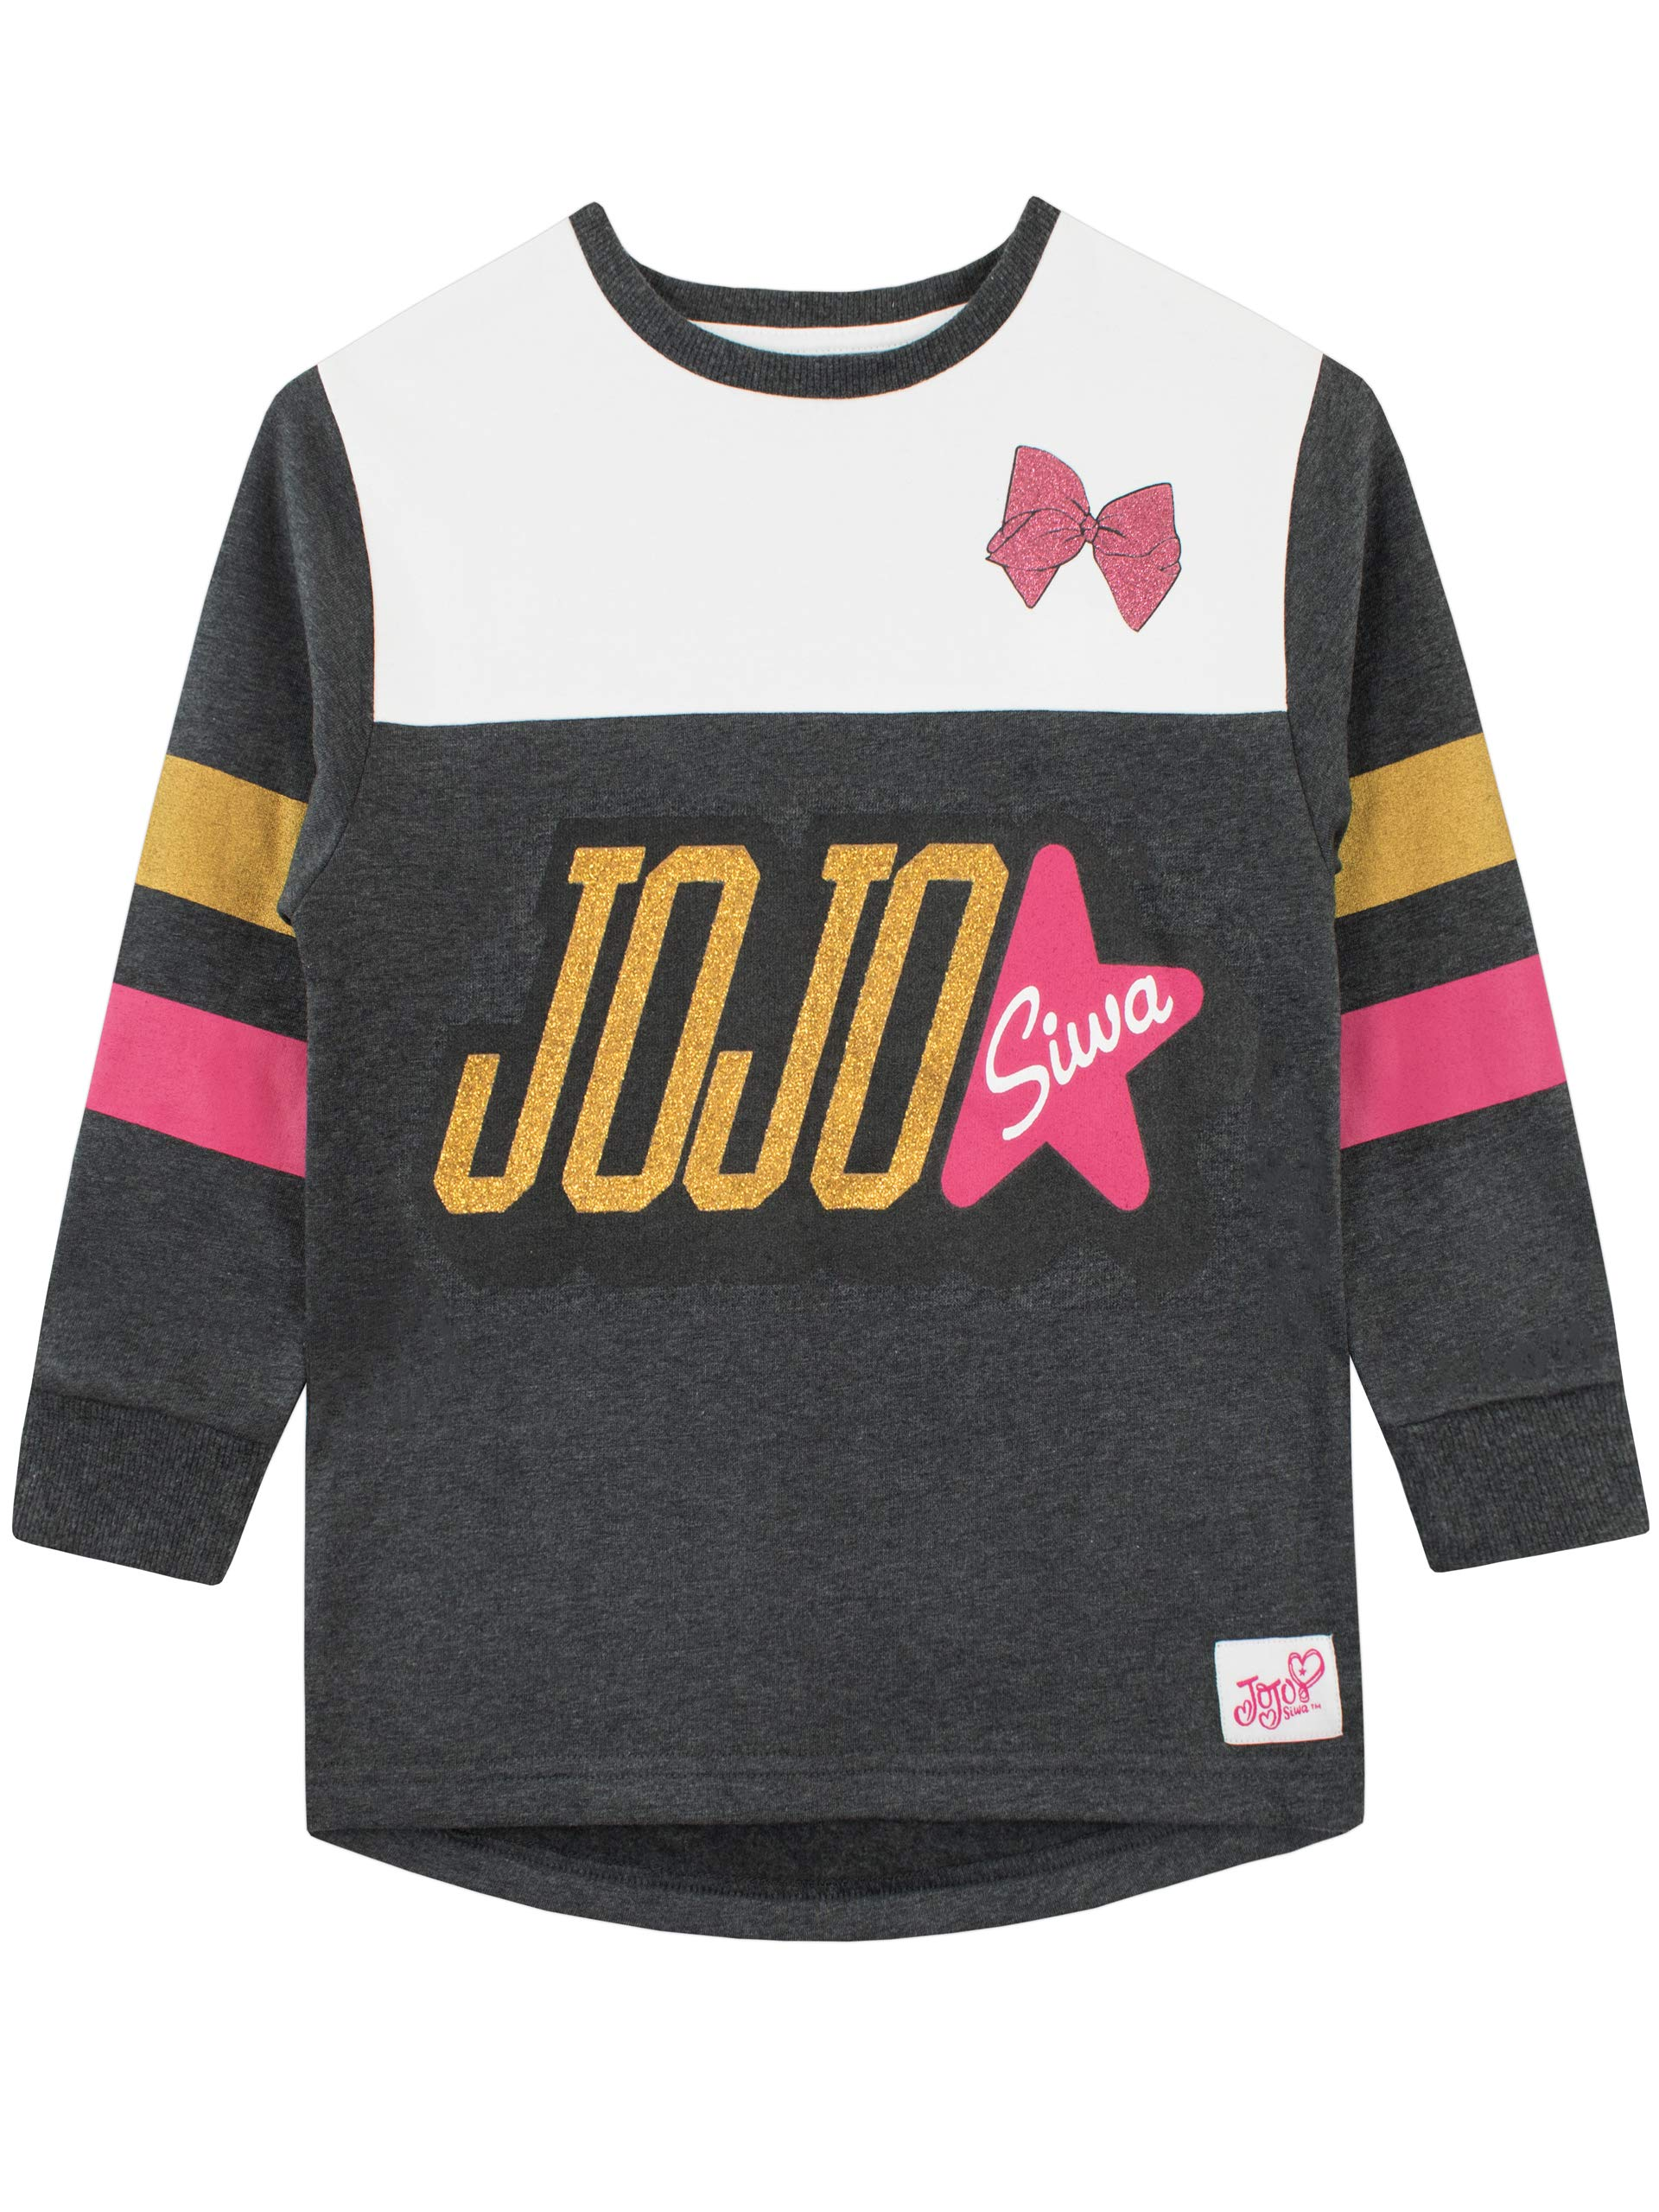 JoJo Siwa Girls' Jo Jo Sweat Dress Size 8 Multicolor by JoJo Siwa